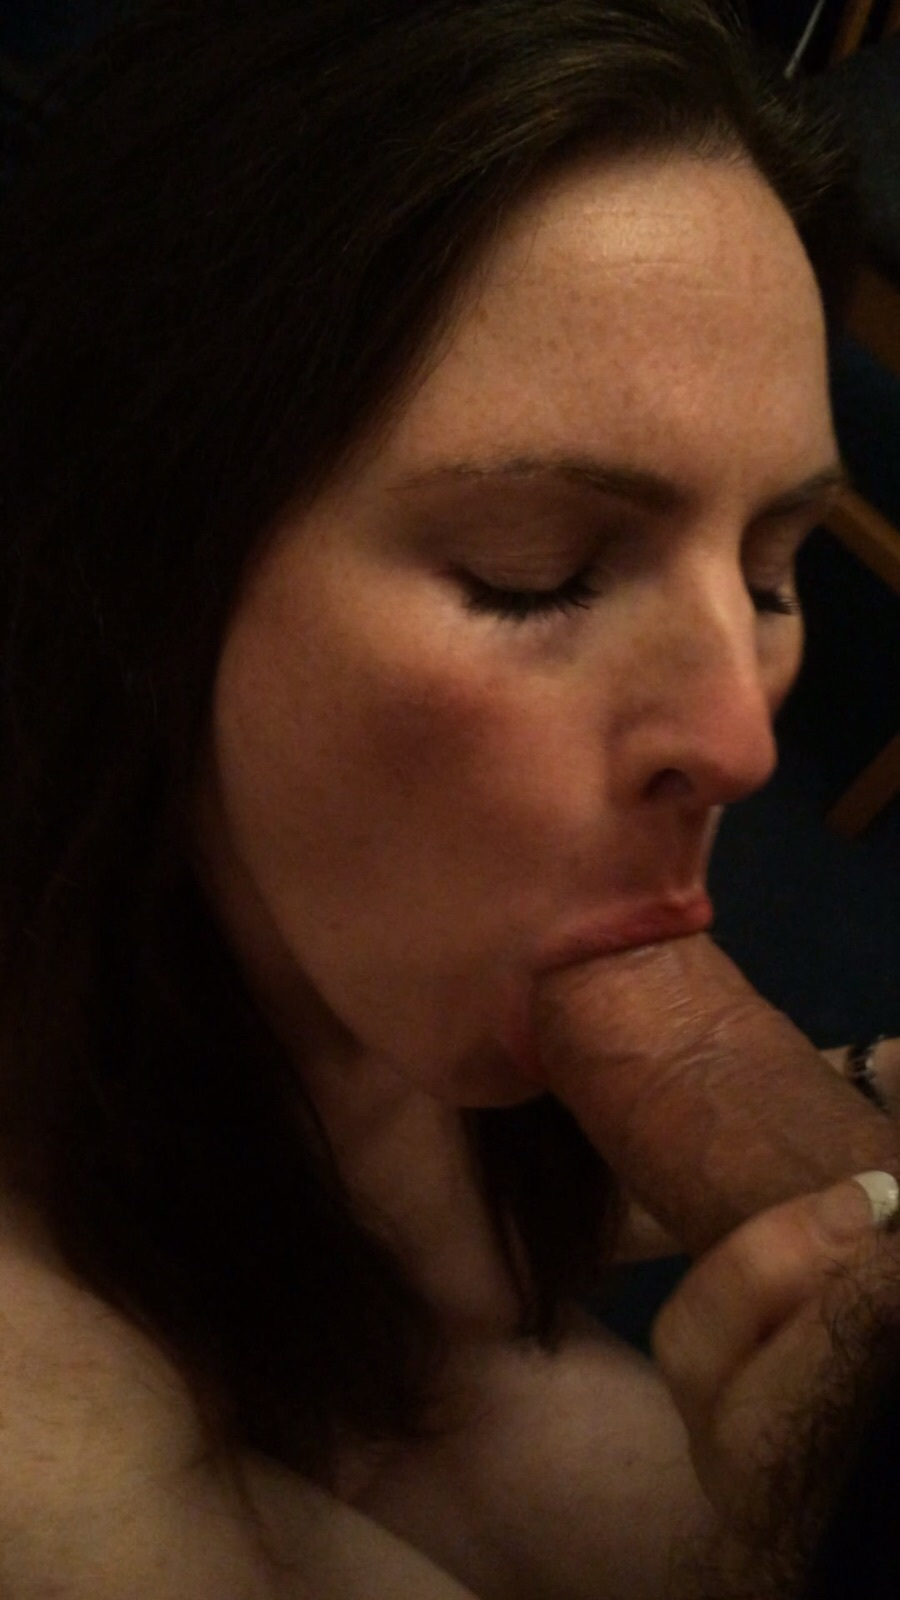 amber blank homemade scenes pack amber blank daddy fucks his property tumukedsds